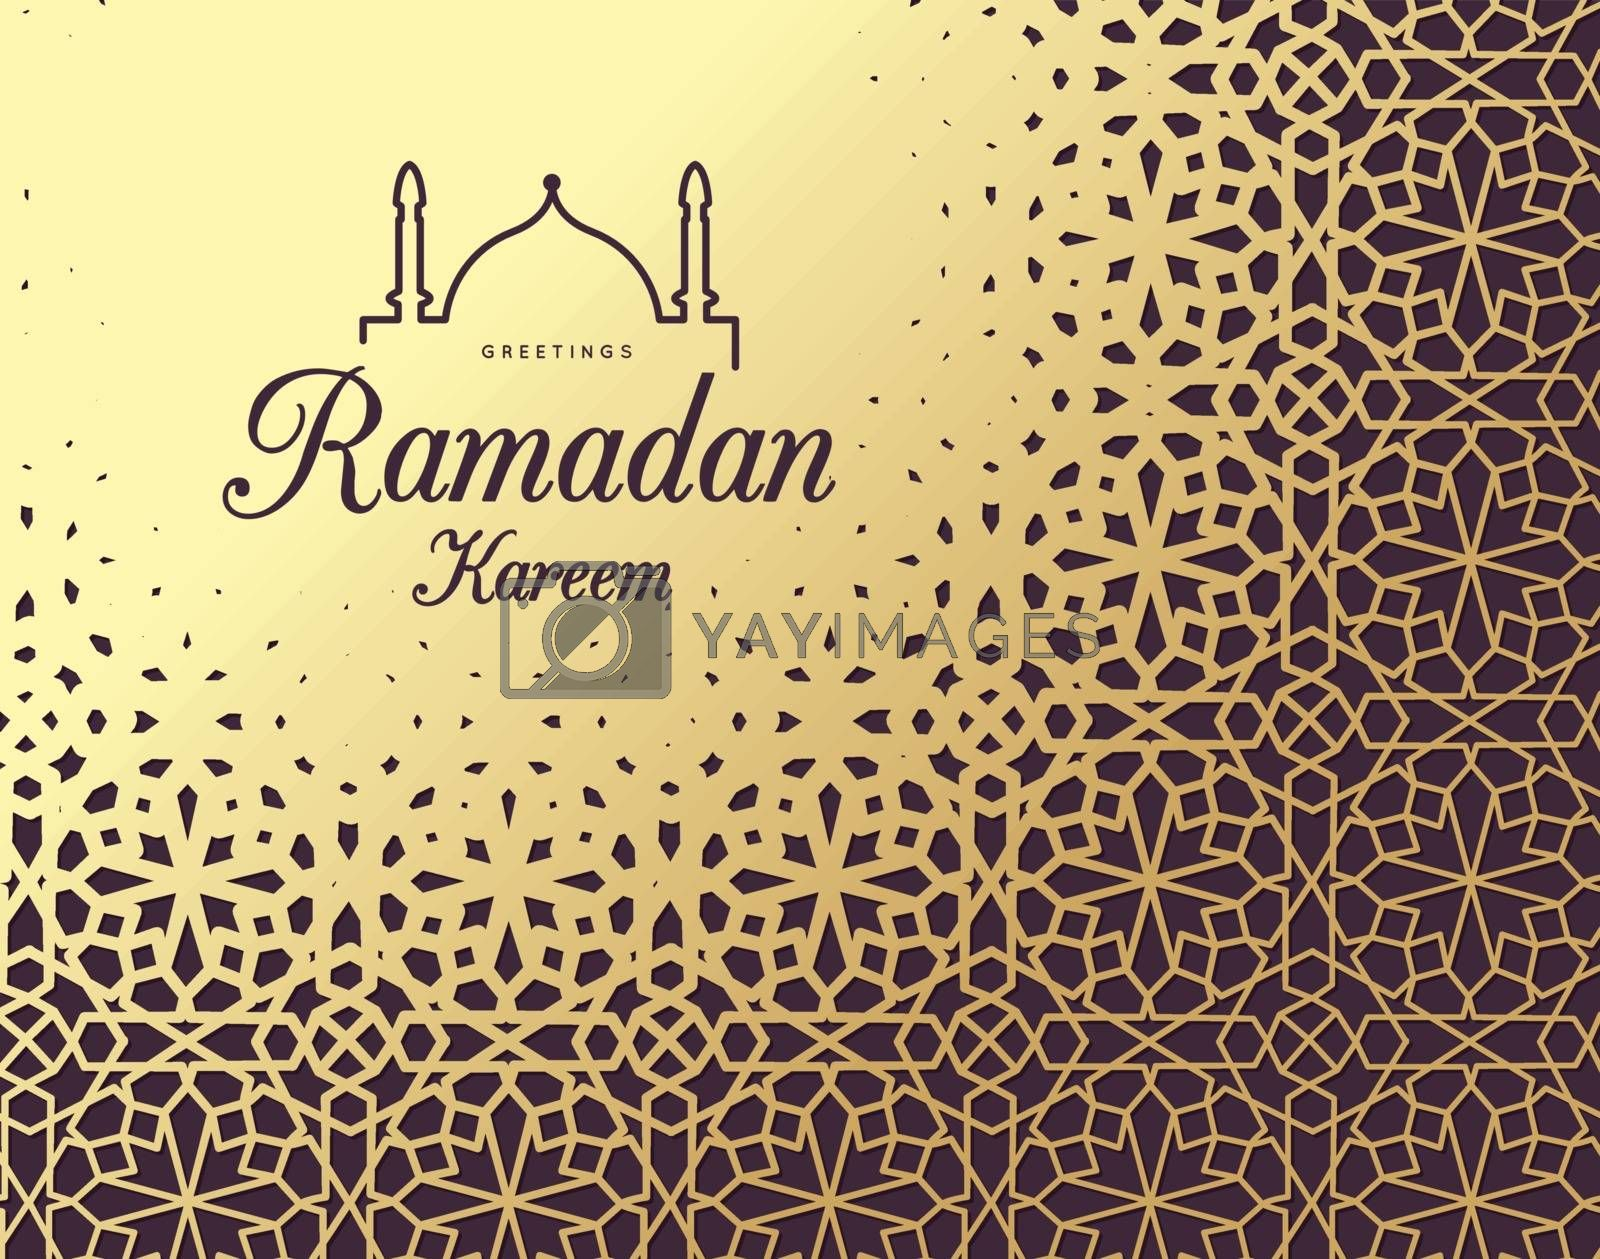 Ramadan Kareem. Congratulations on the holiday. Vector by sermax55